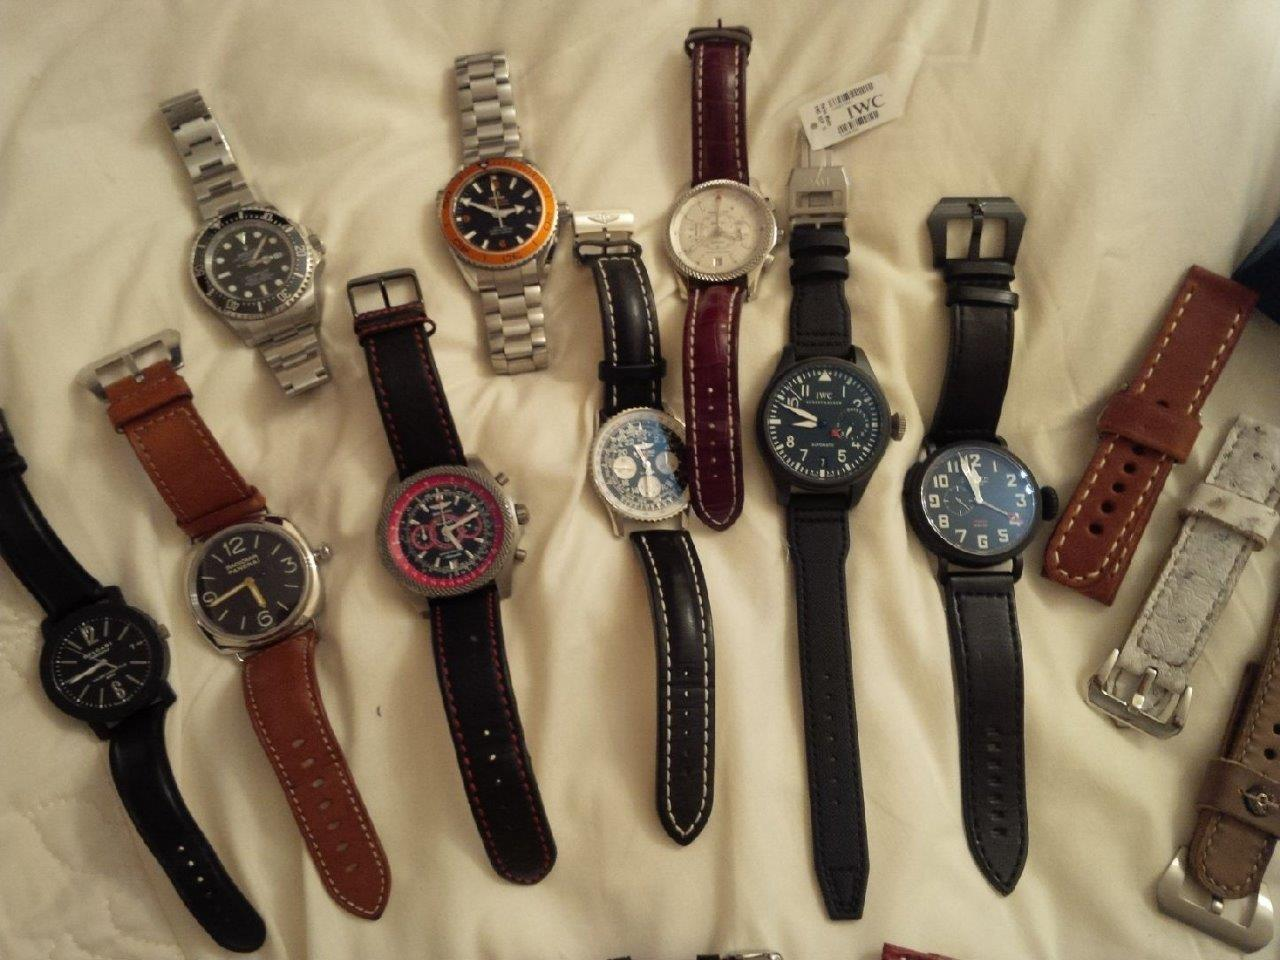 Sidarth's Watch Collection